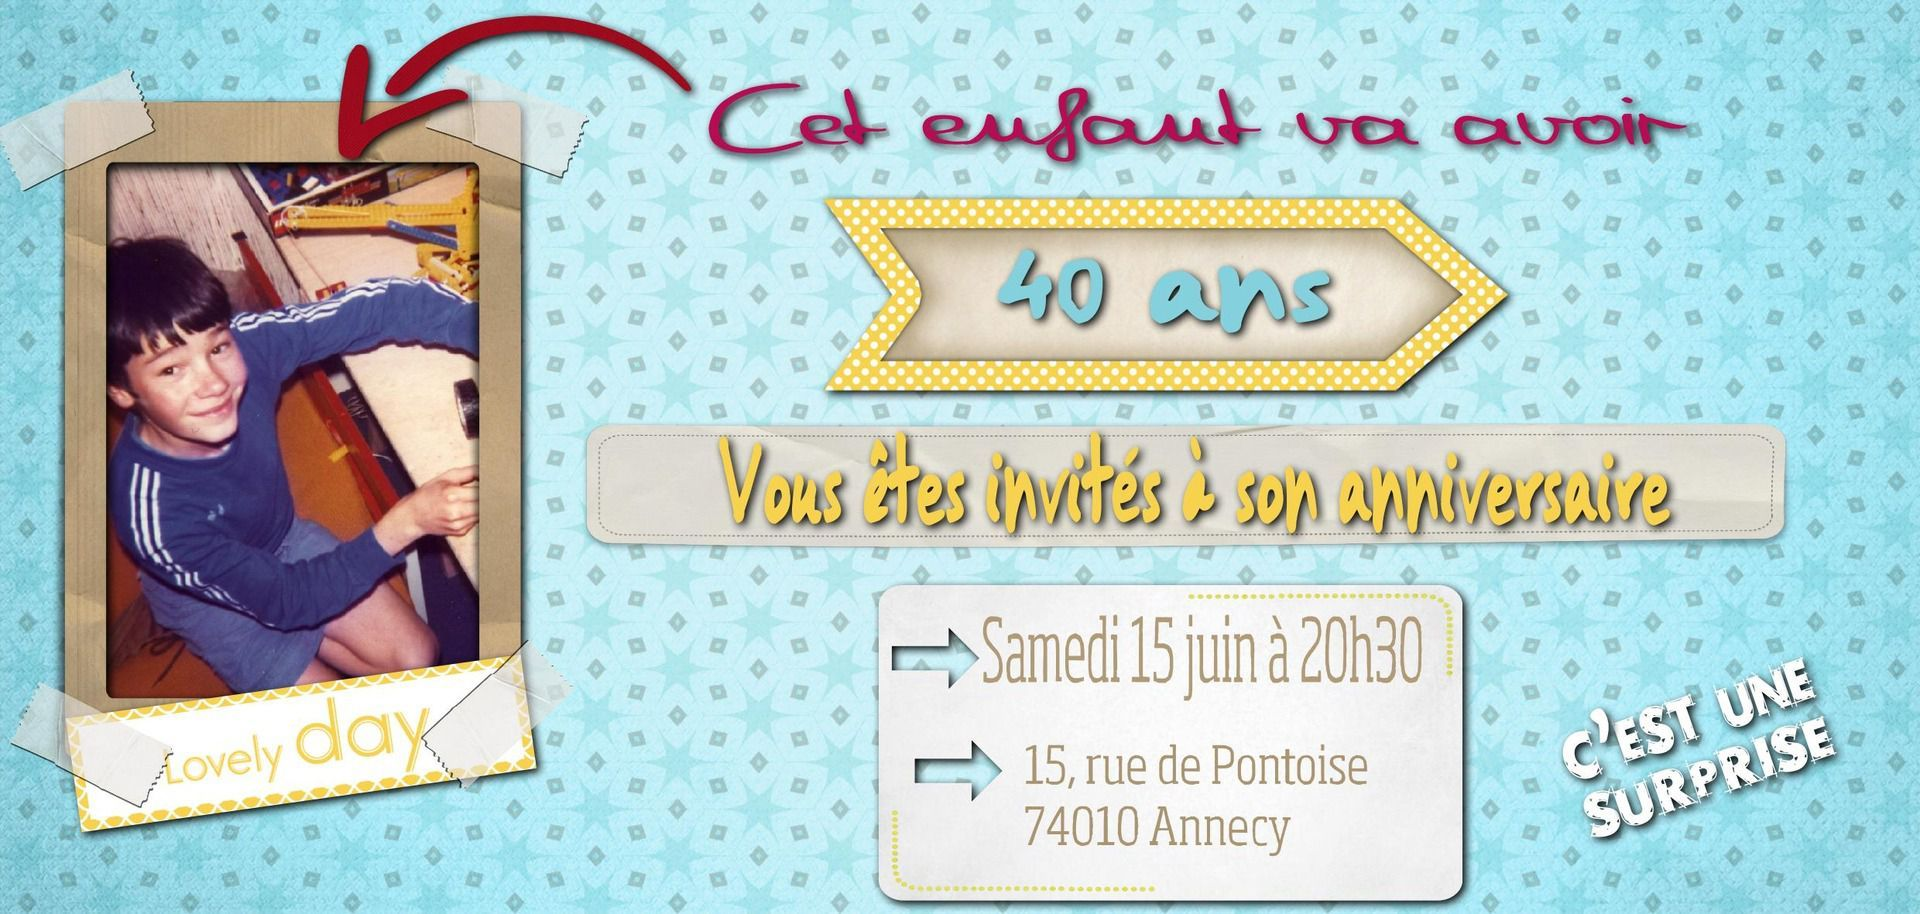 carte invitation anniversaire 40 ans virtuelle gratuite carte invitation anniversaire. Black Bedroom Furniture Sets. Home Design Ideas